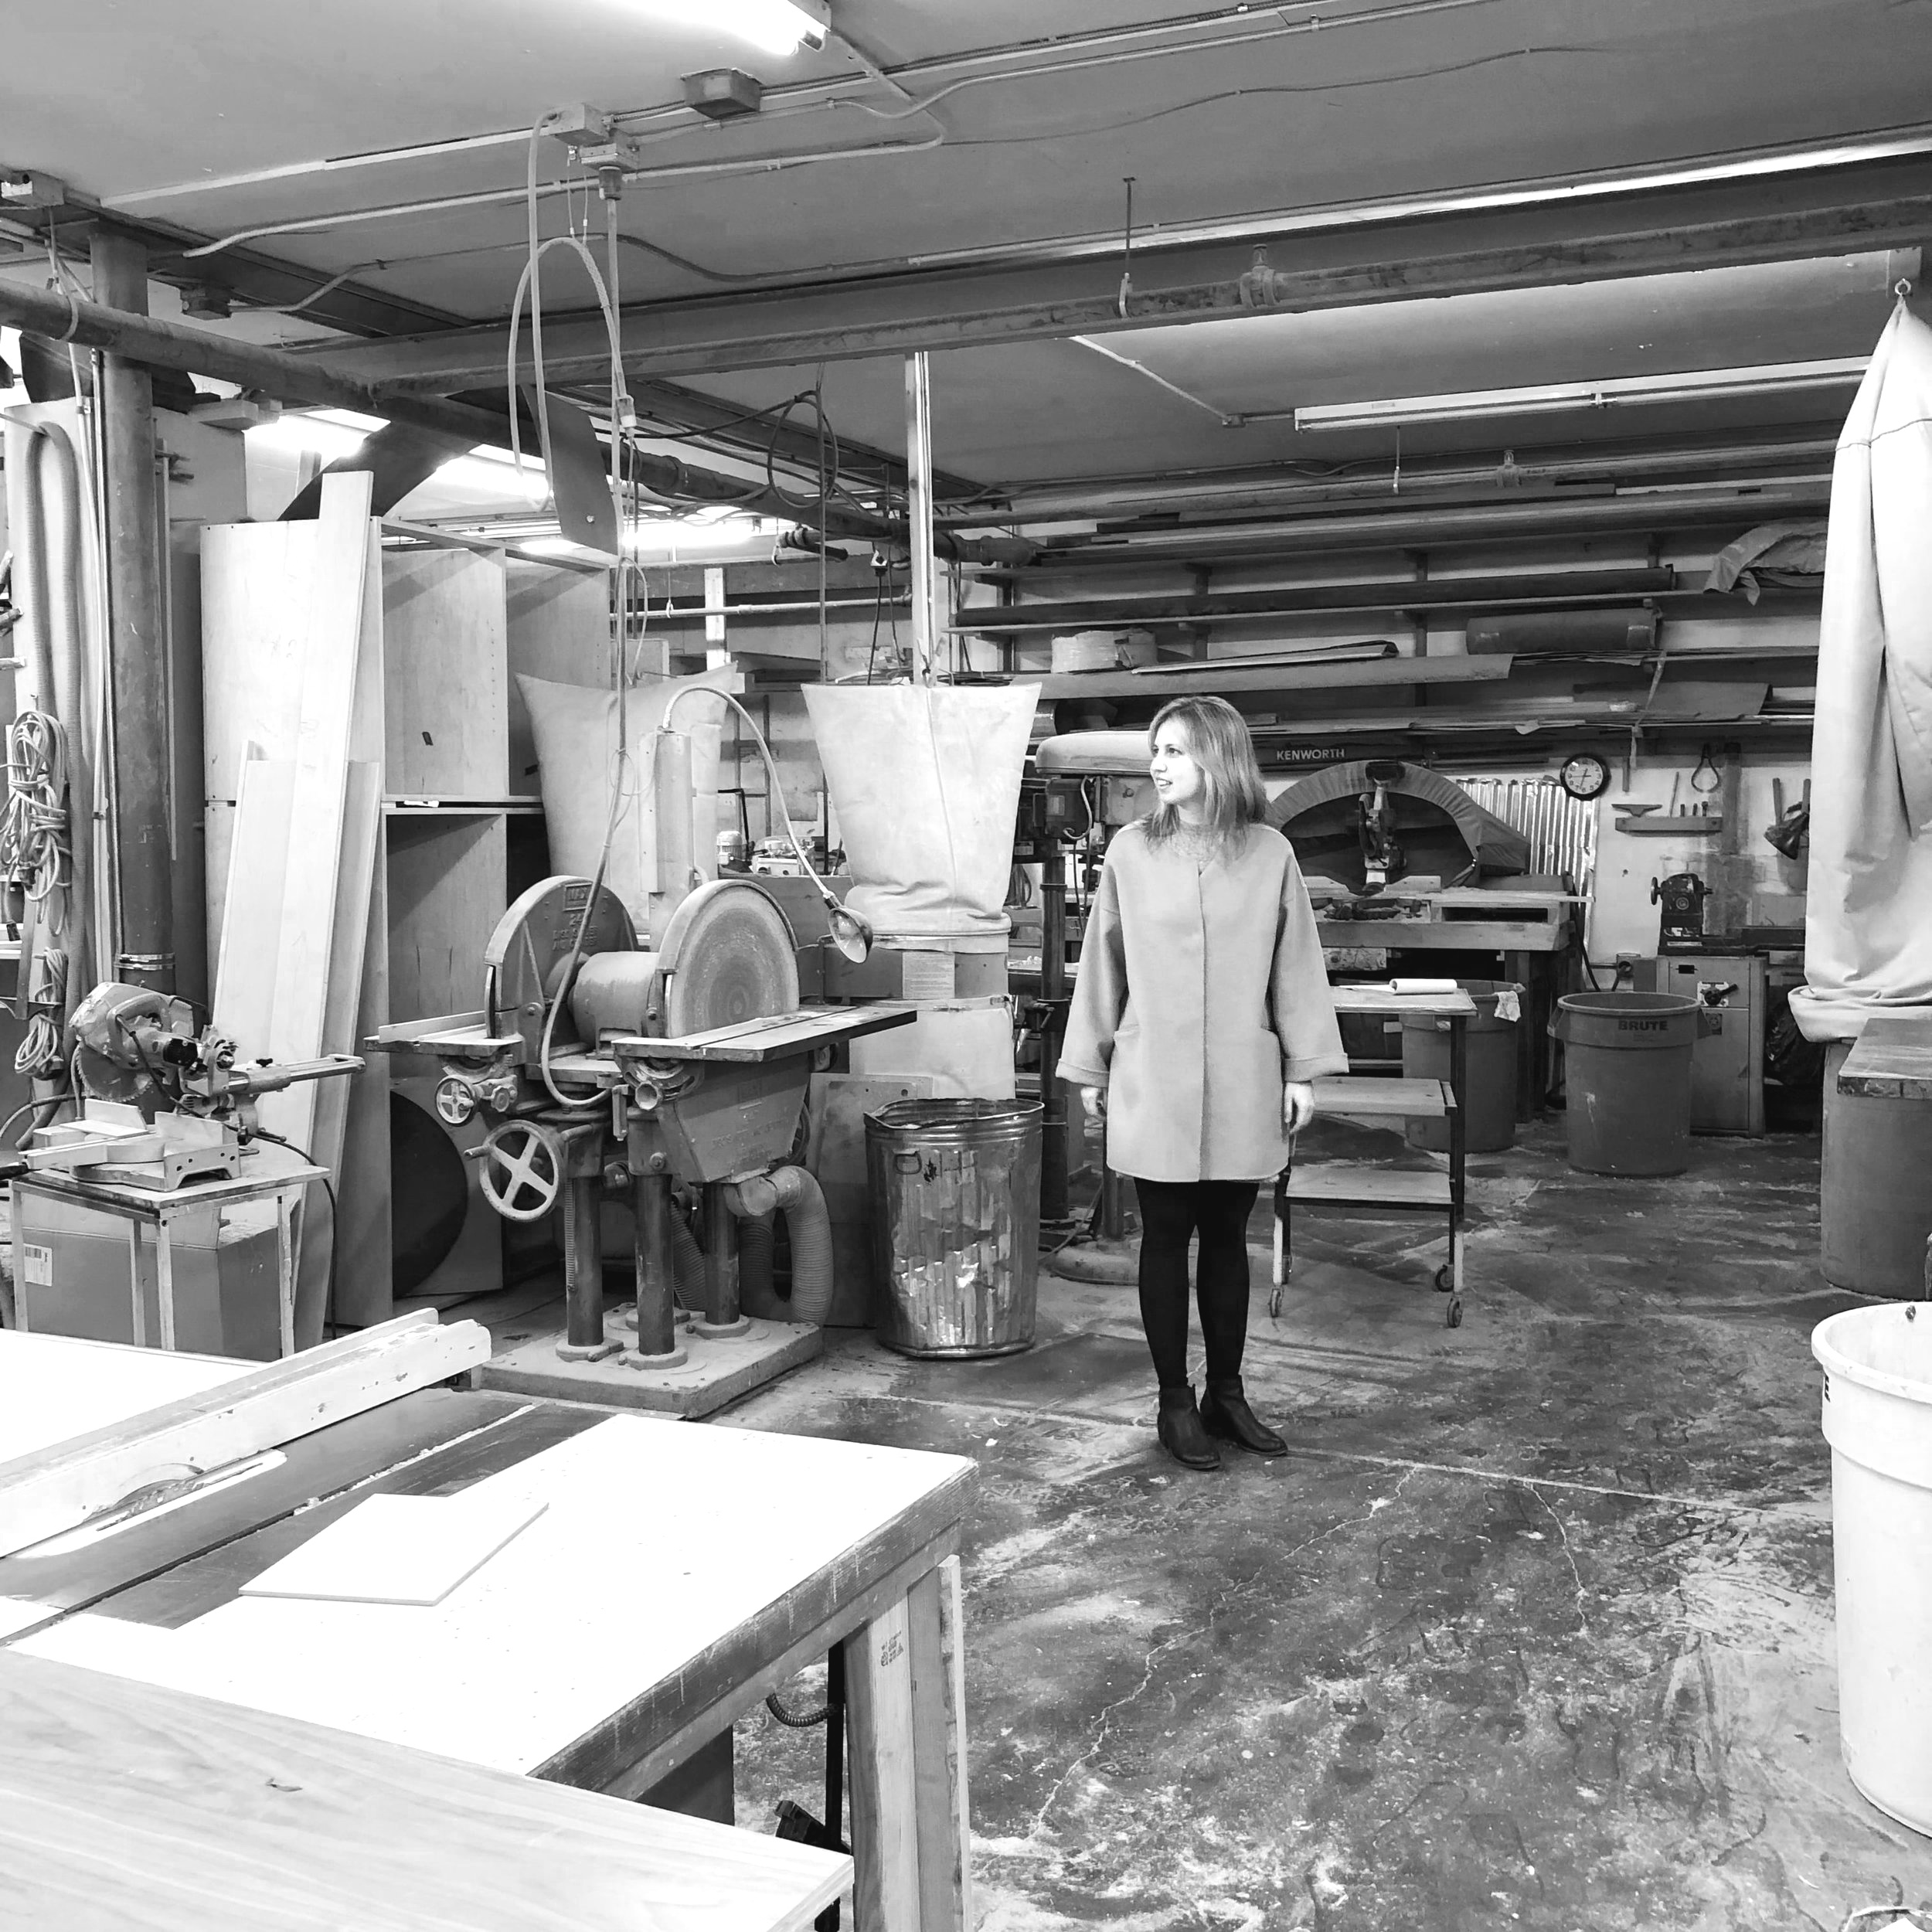 Where our ideas come to life - wood working shop (from custom headboards to vanities and kitchen cabinets)